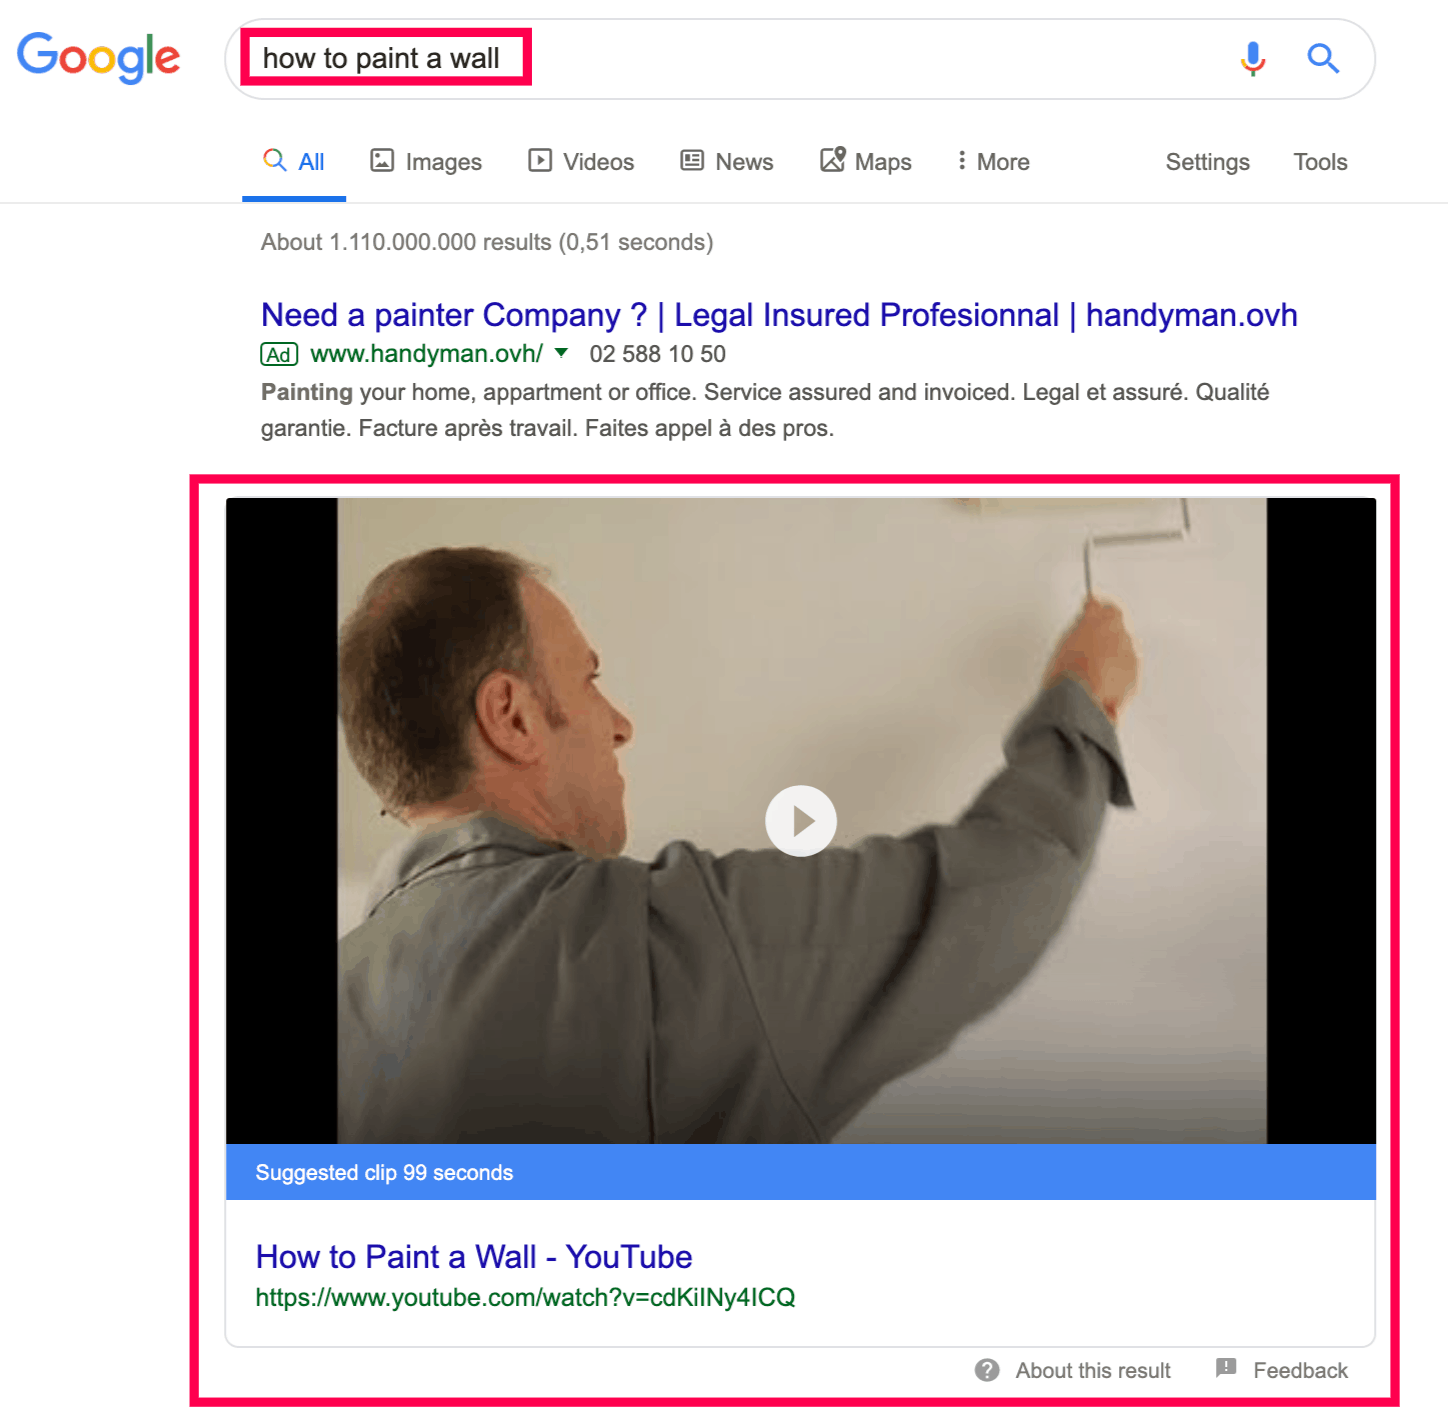 how to paint a wall google search results